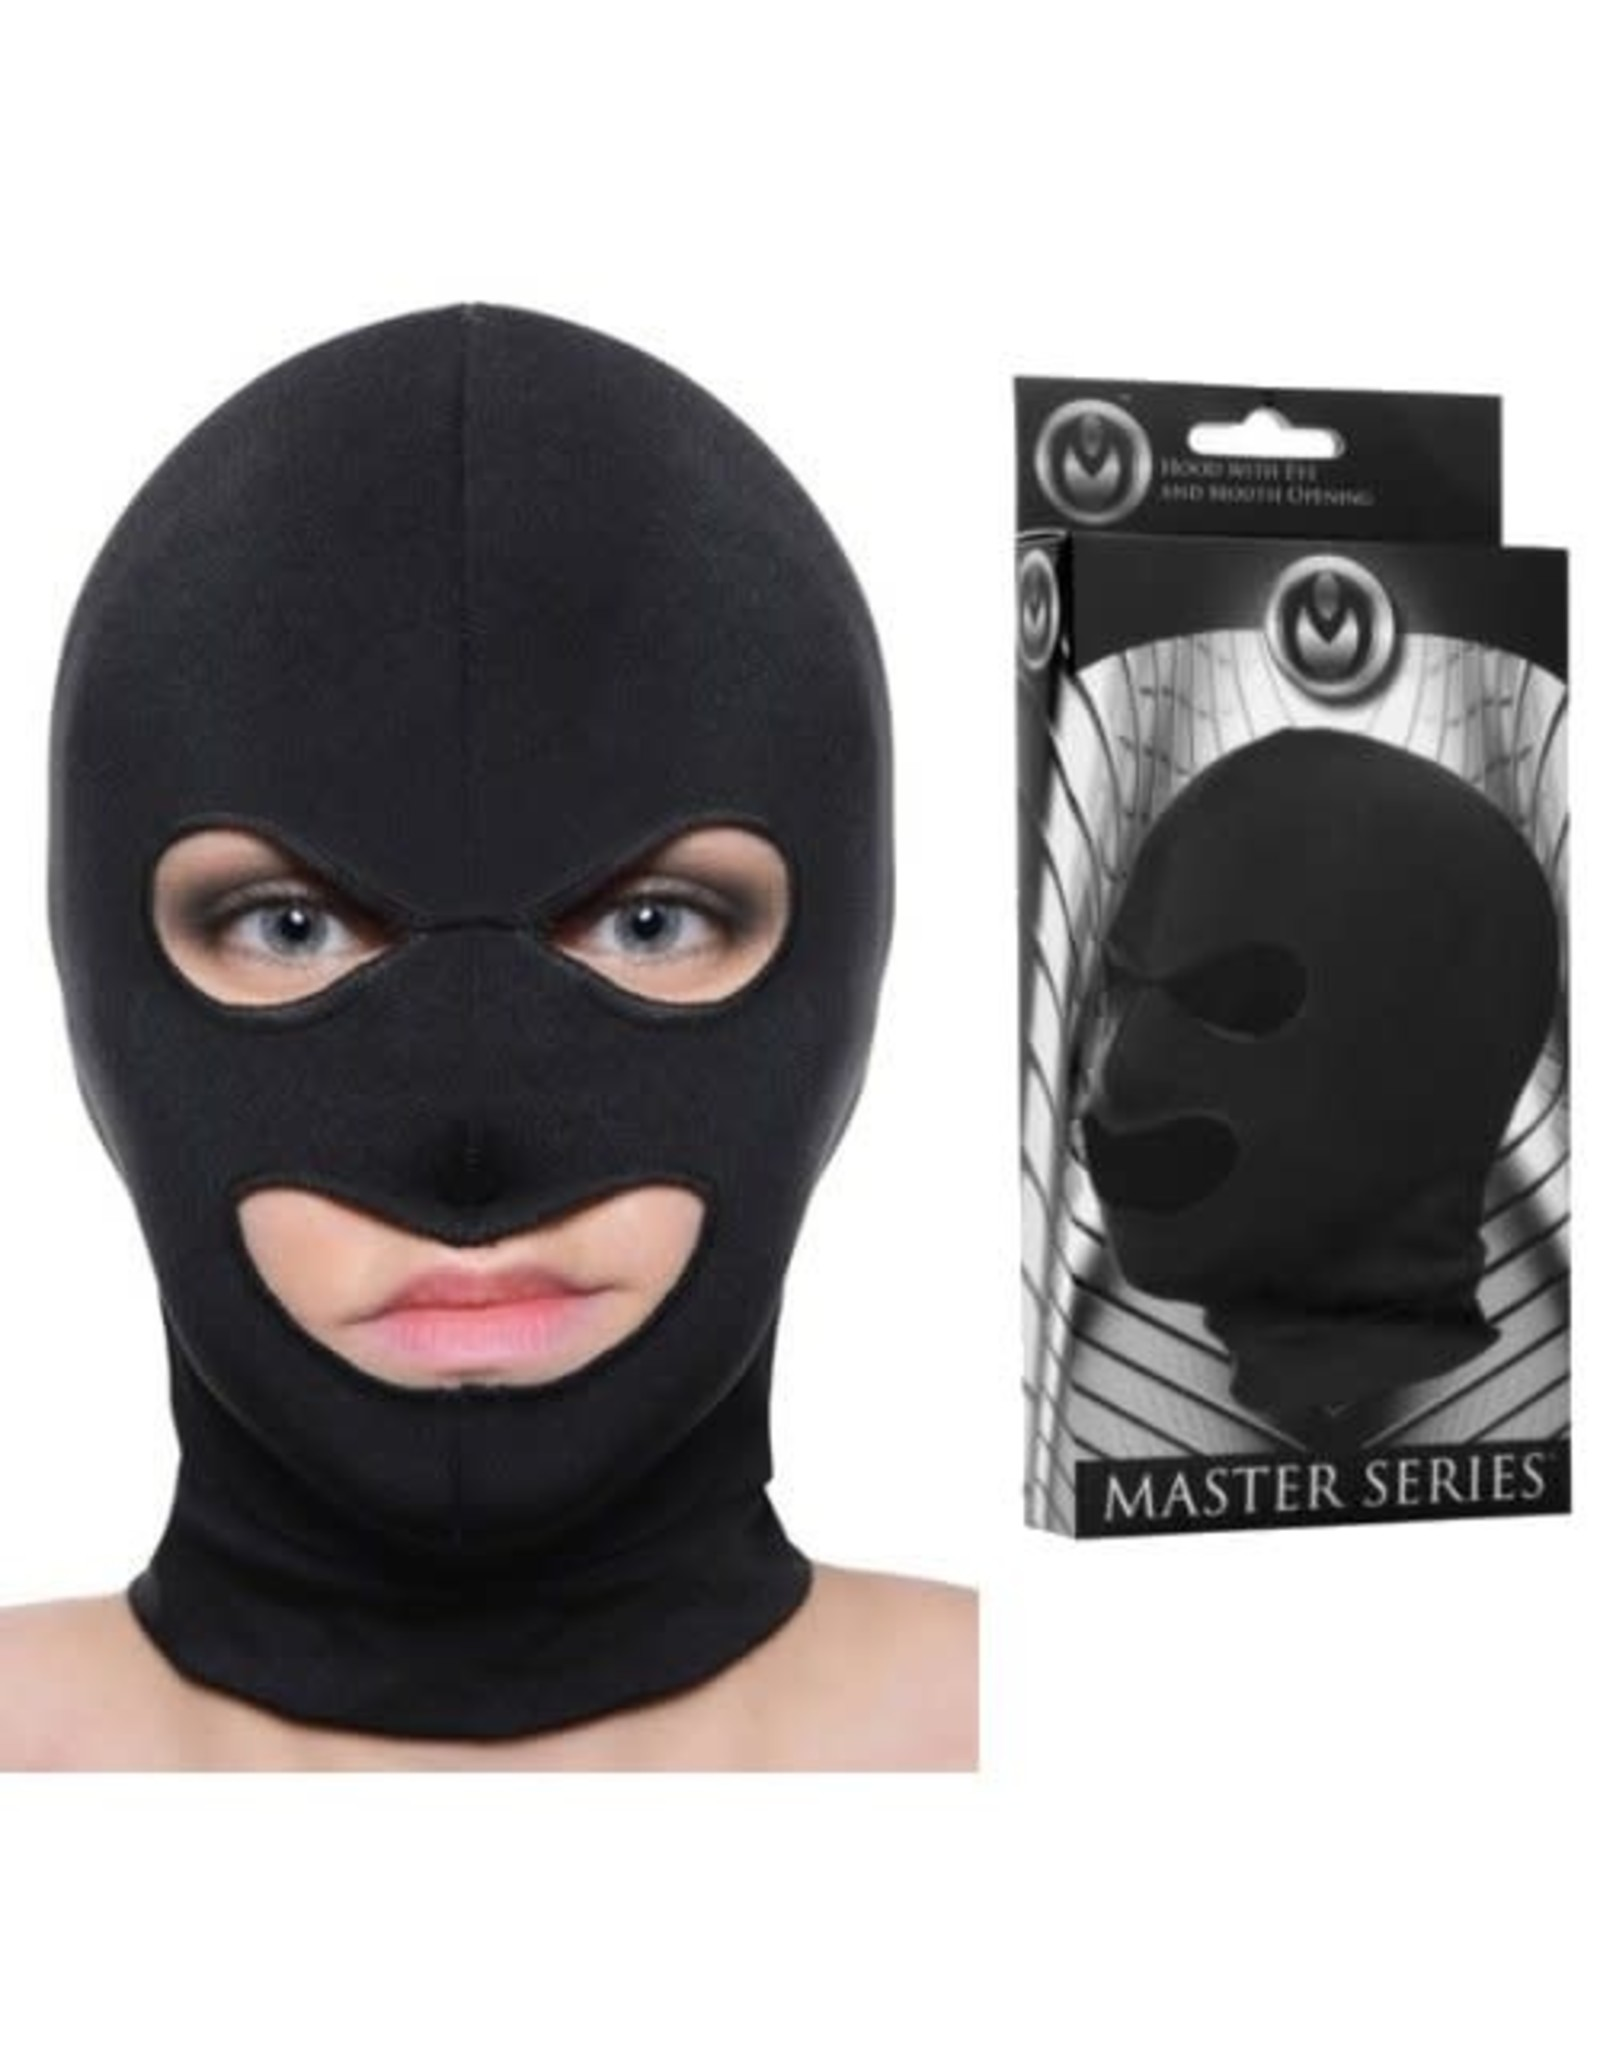 Master Series Master Series Facade Hood with Eye and Mouth Holes